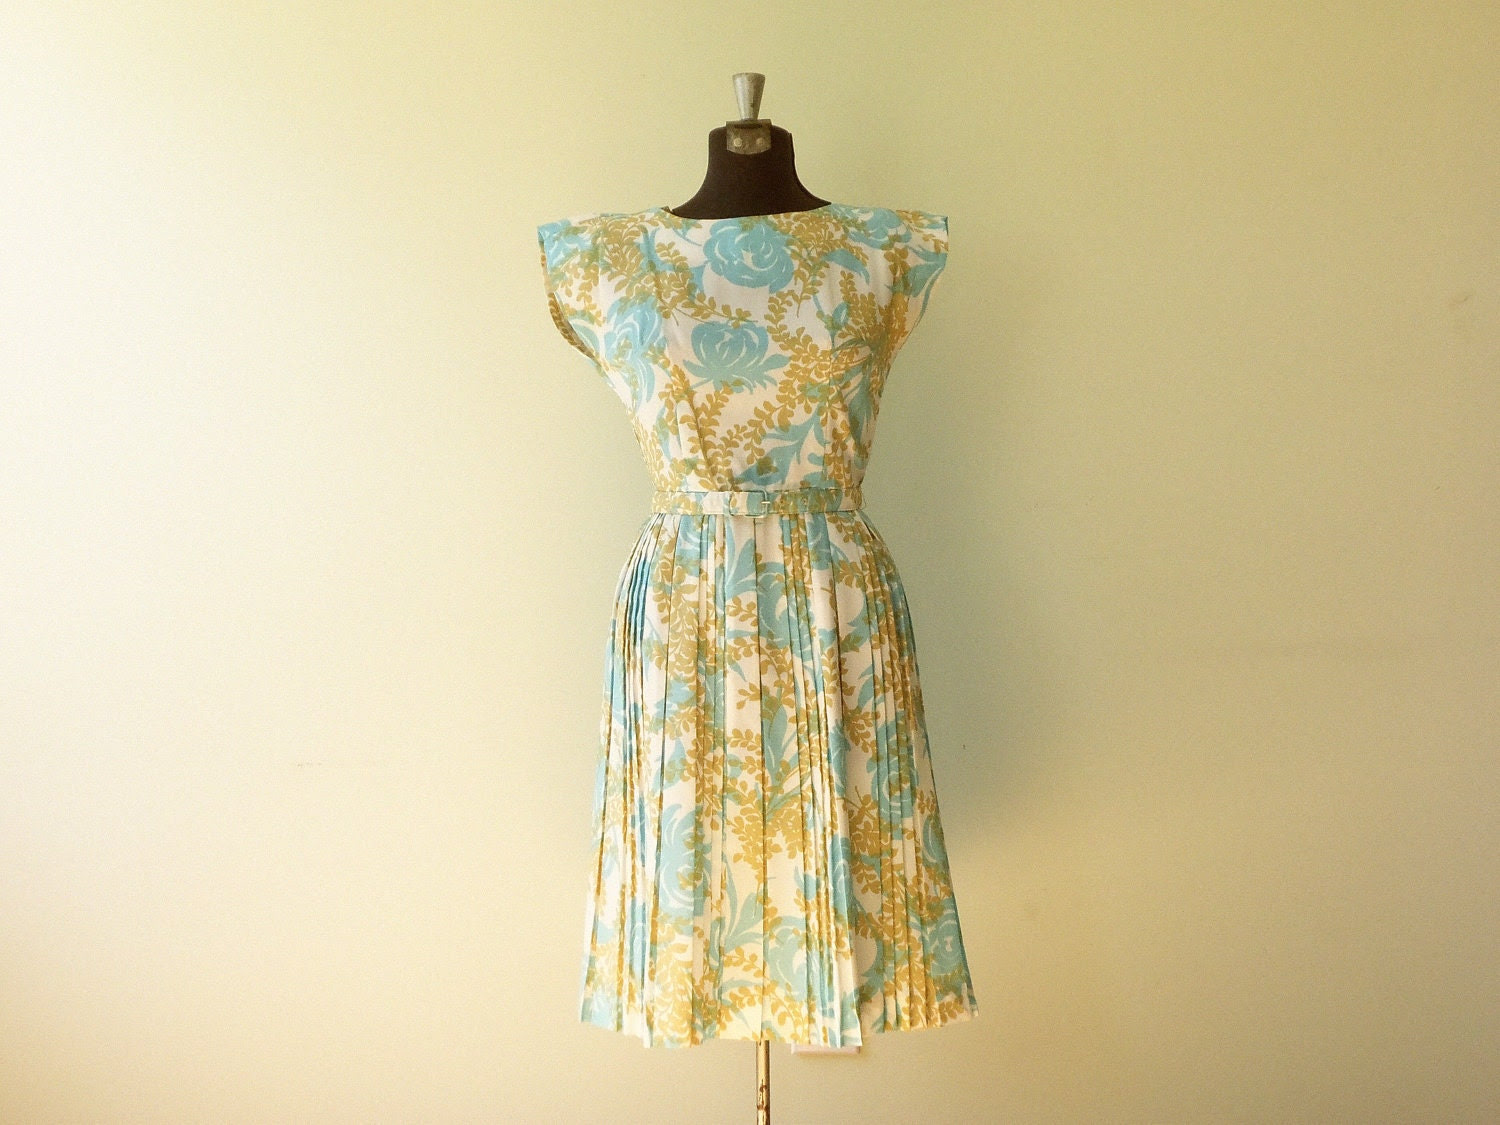 Vintage 1950s Dress / Vintage Small Dress /  Vintage Easter Dress